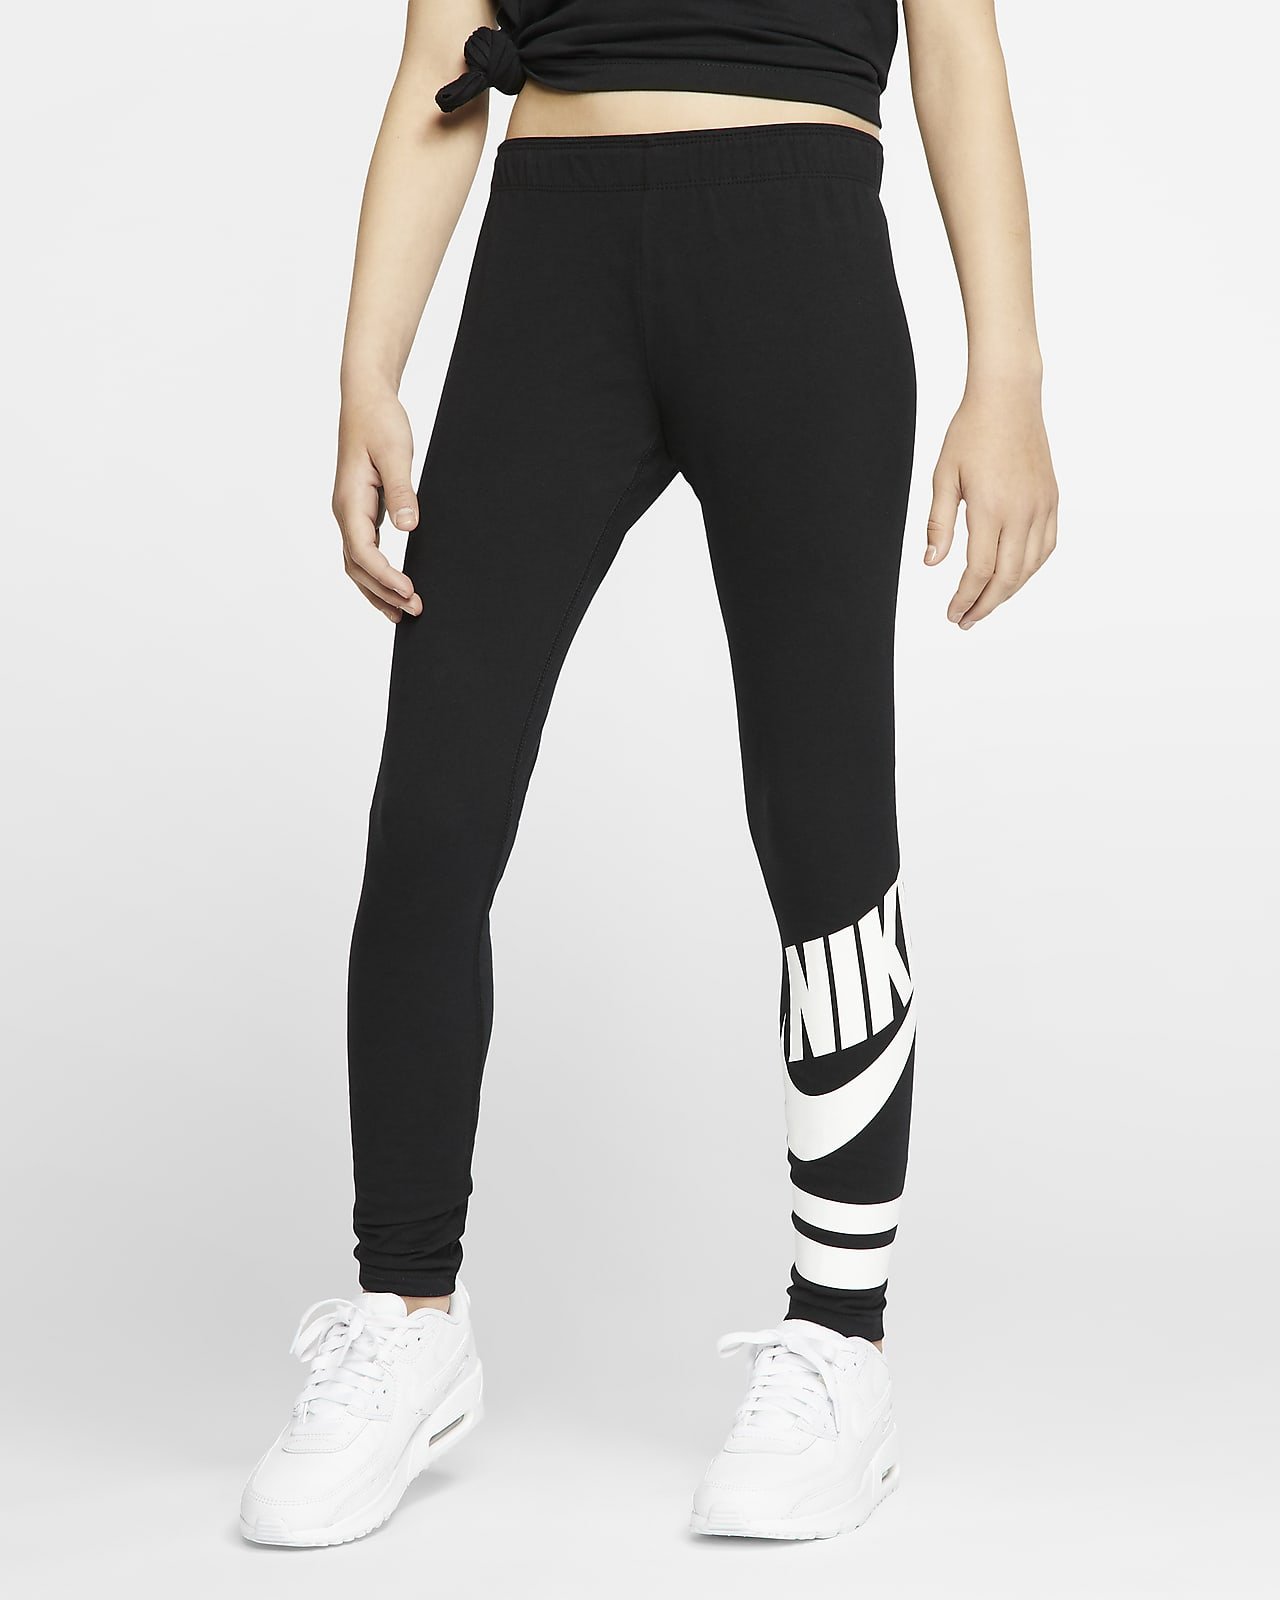 Nike Sportswear Older Kids' (Girls') Graphic Leggings